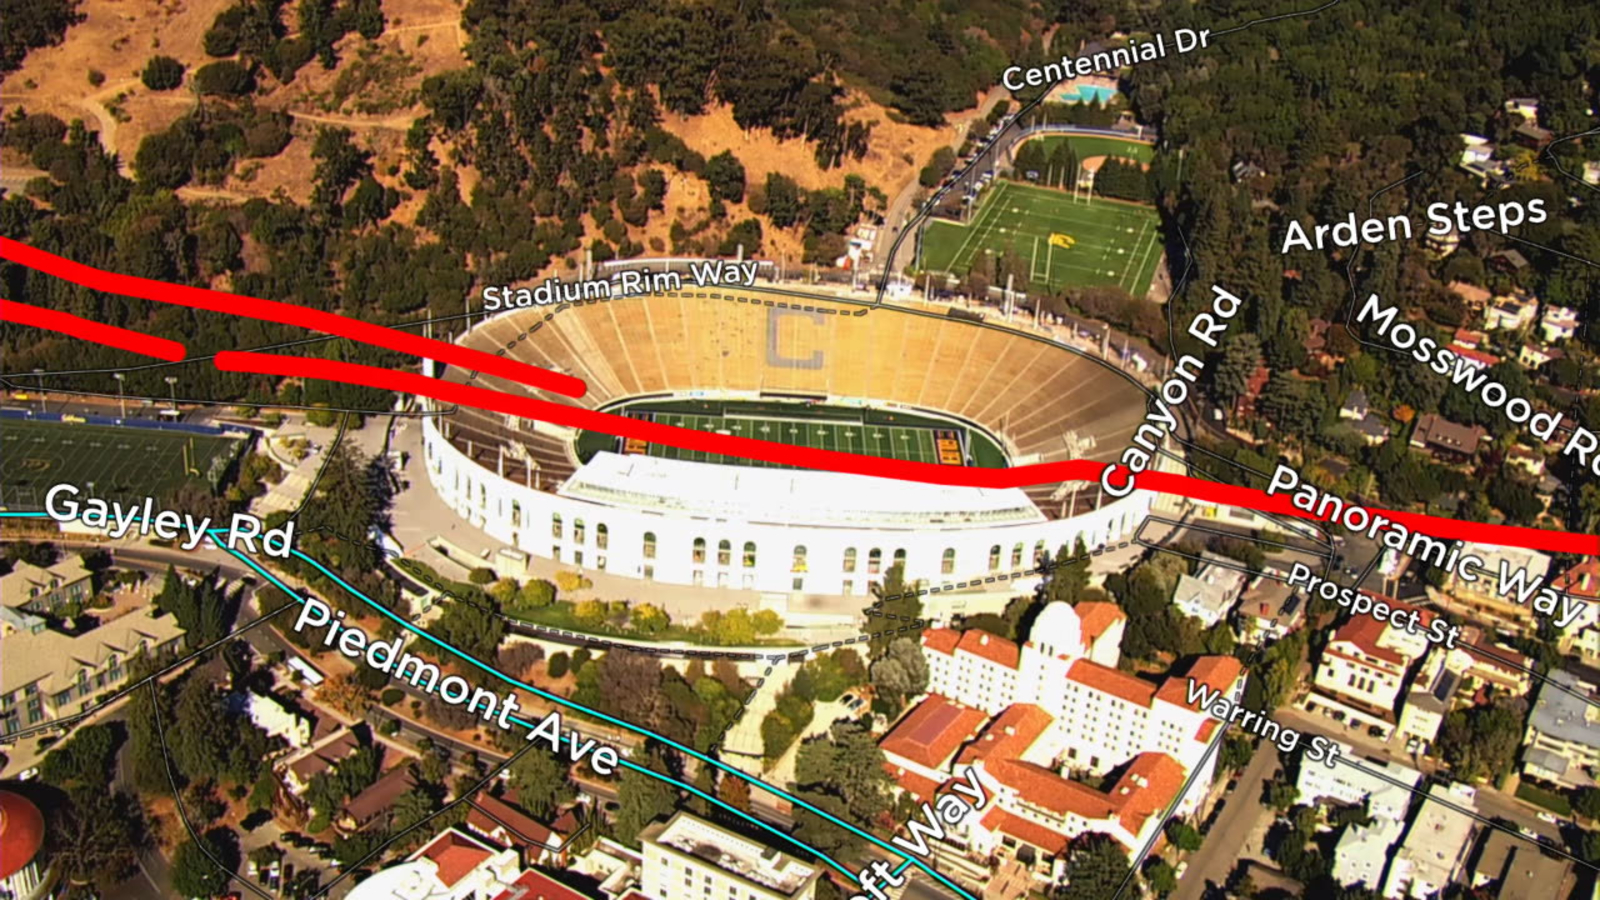 Hayward Fault: The most dangerous fault in America